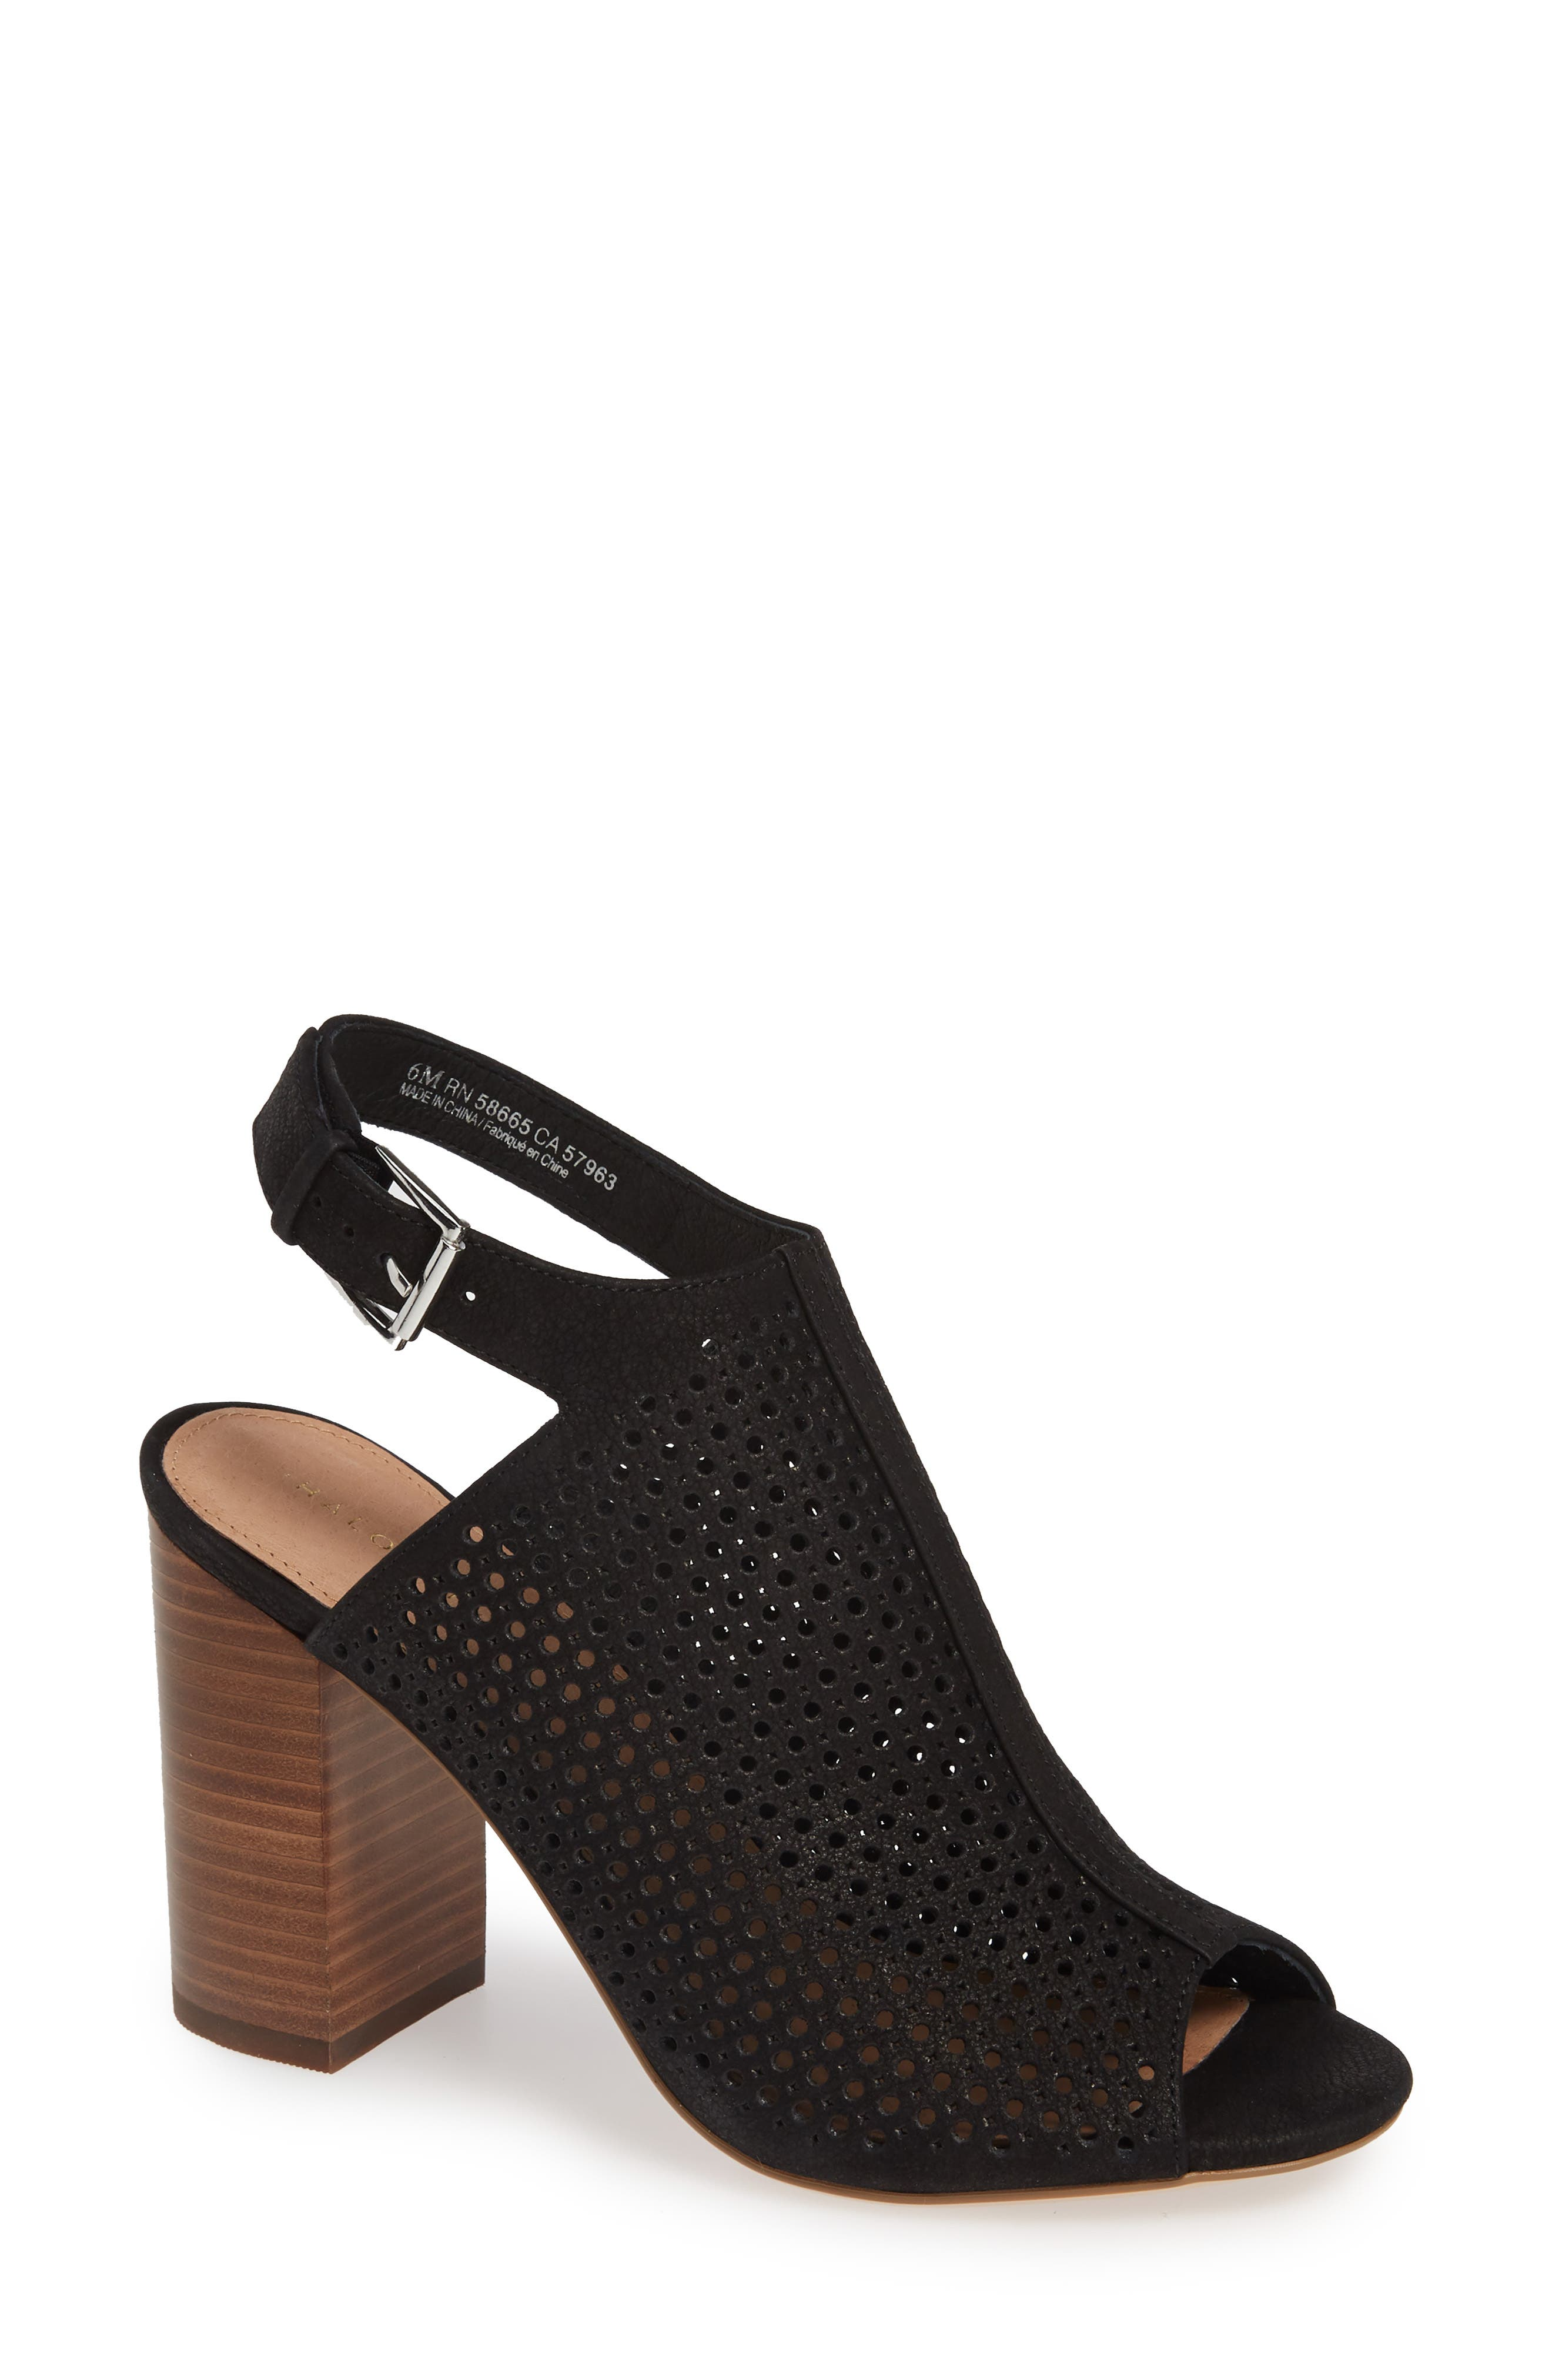 HALOGEN<SUP>®</SUP> Demi Perforated Shield Sandal, Main, color, BLACK OILED NUBUCK